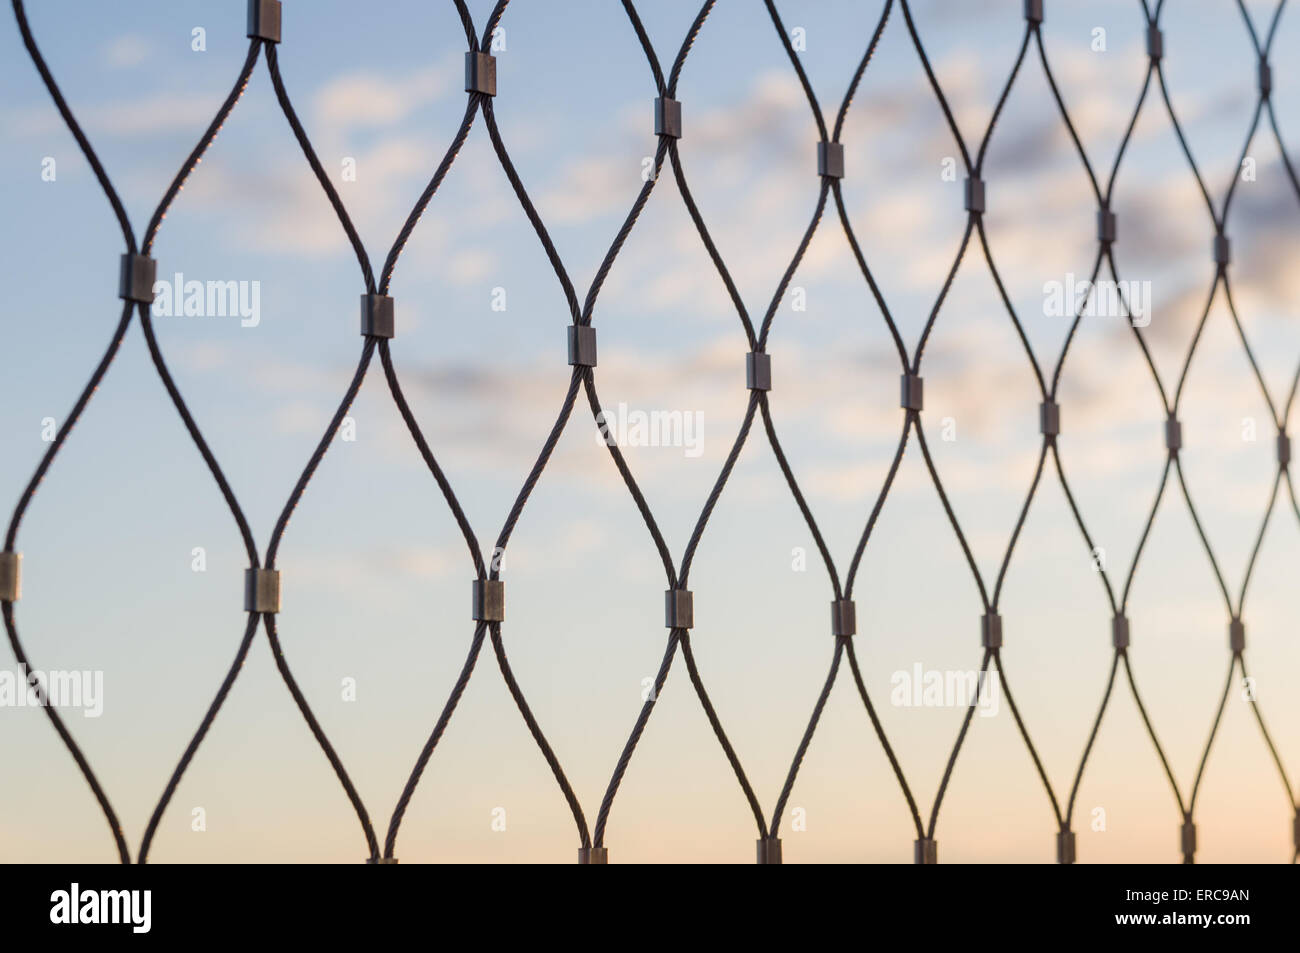 Metal mesh wire fence closeup sunset sky background Stock Photo ...